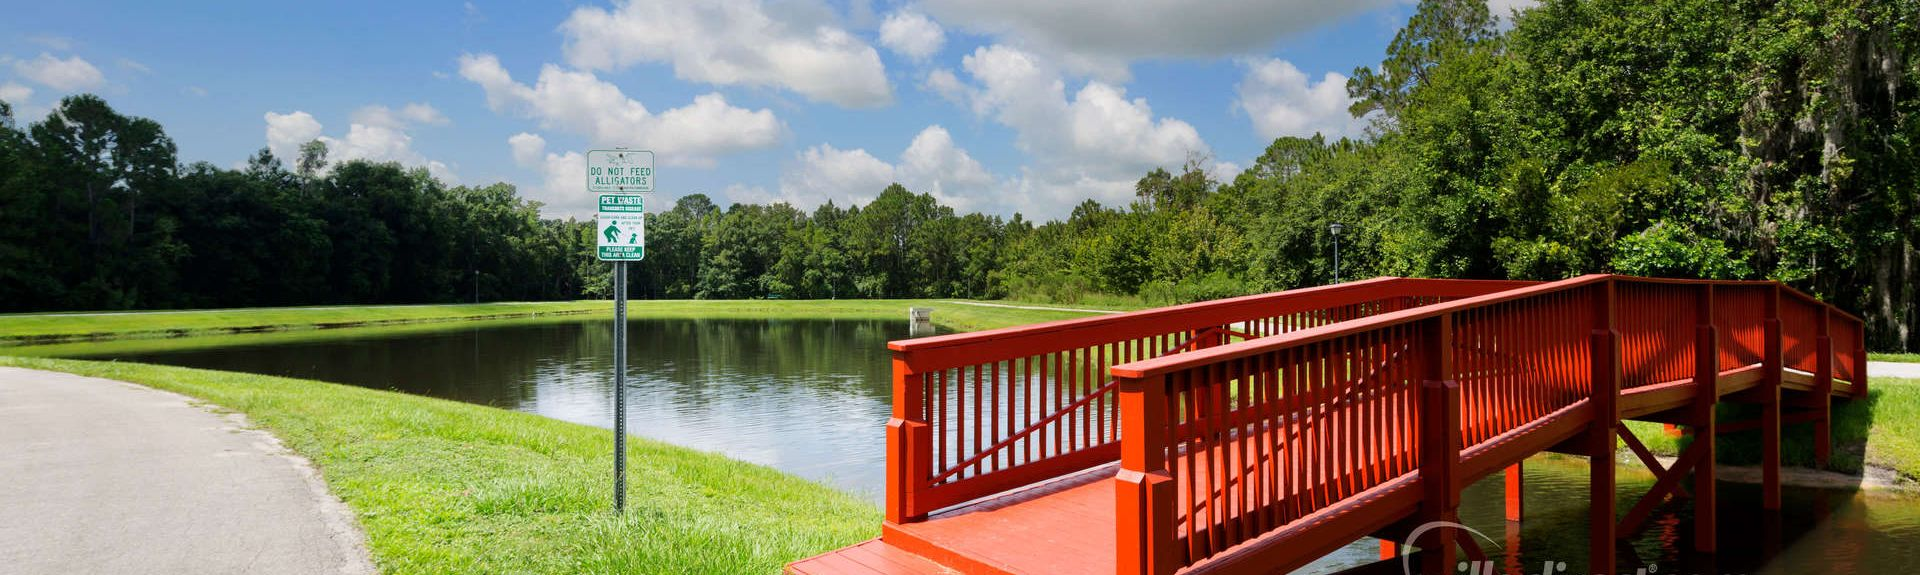 Cumbrian Lakes, Kissimmee, Florida, United States of America